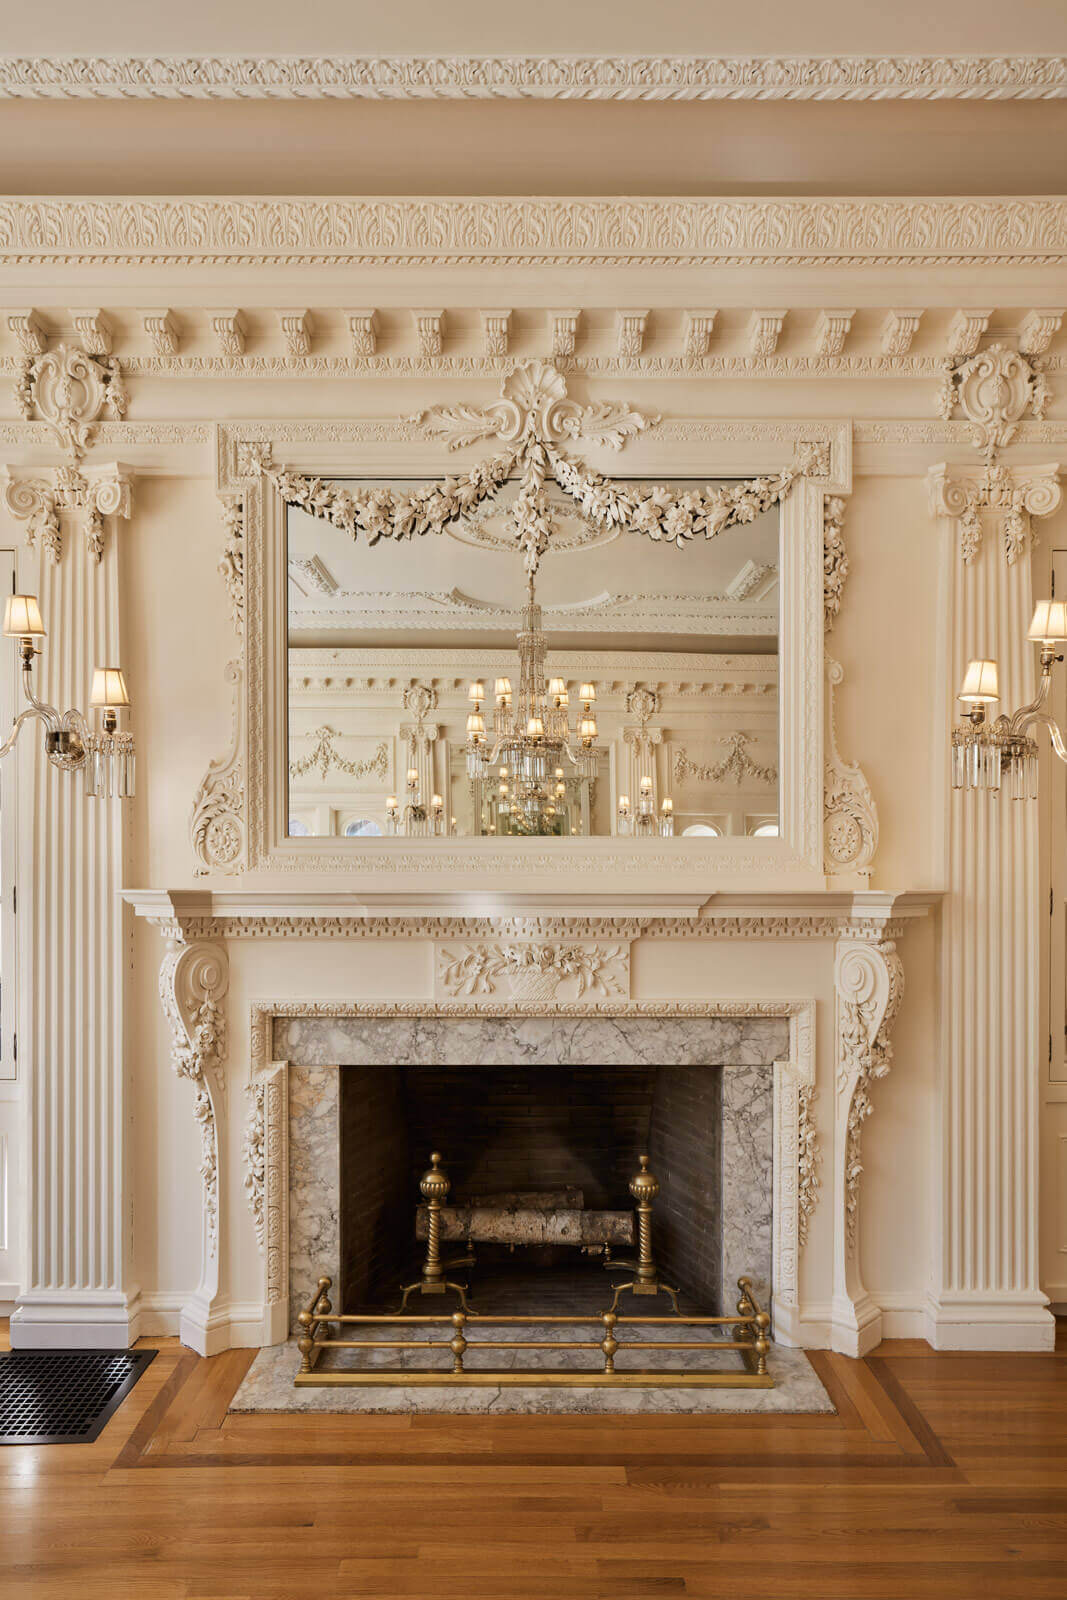 Elaborately restored fireplace with detailed moldings and light fixtures, with a mirror above it, reflecting the rest of the creme-colored room.